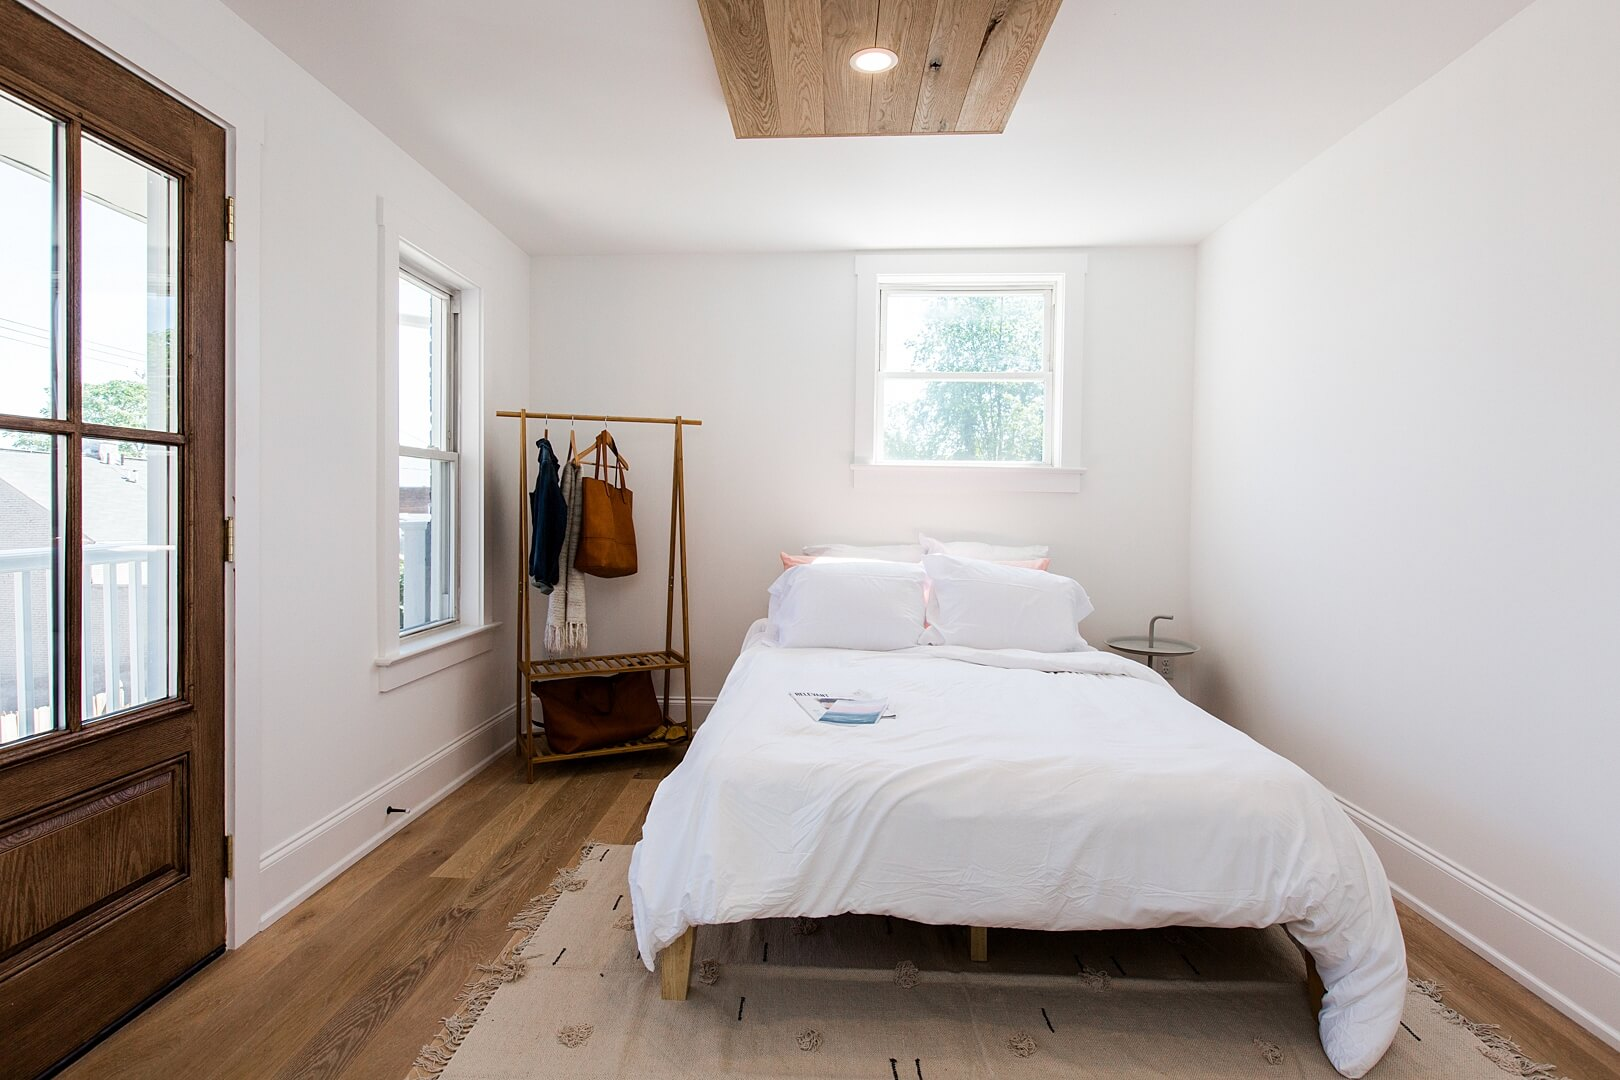 Bedroom with hardwood flooring and a white oak ceiling accent.